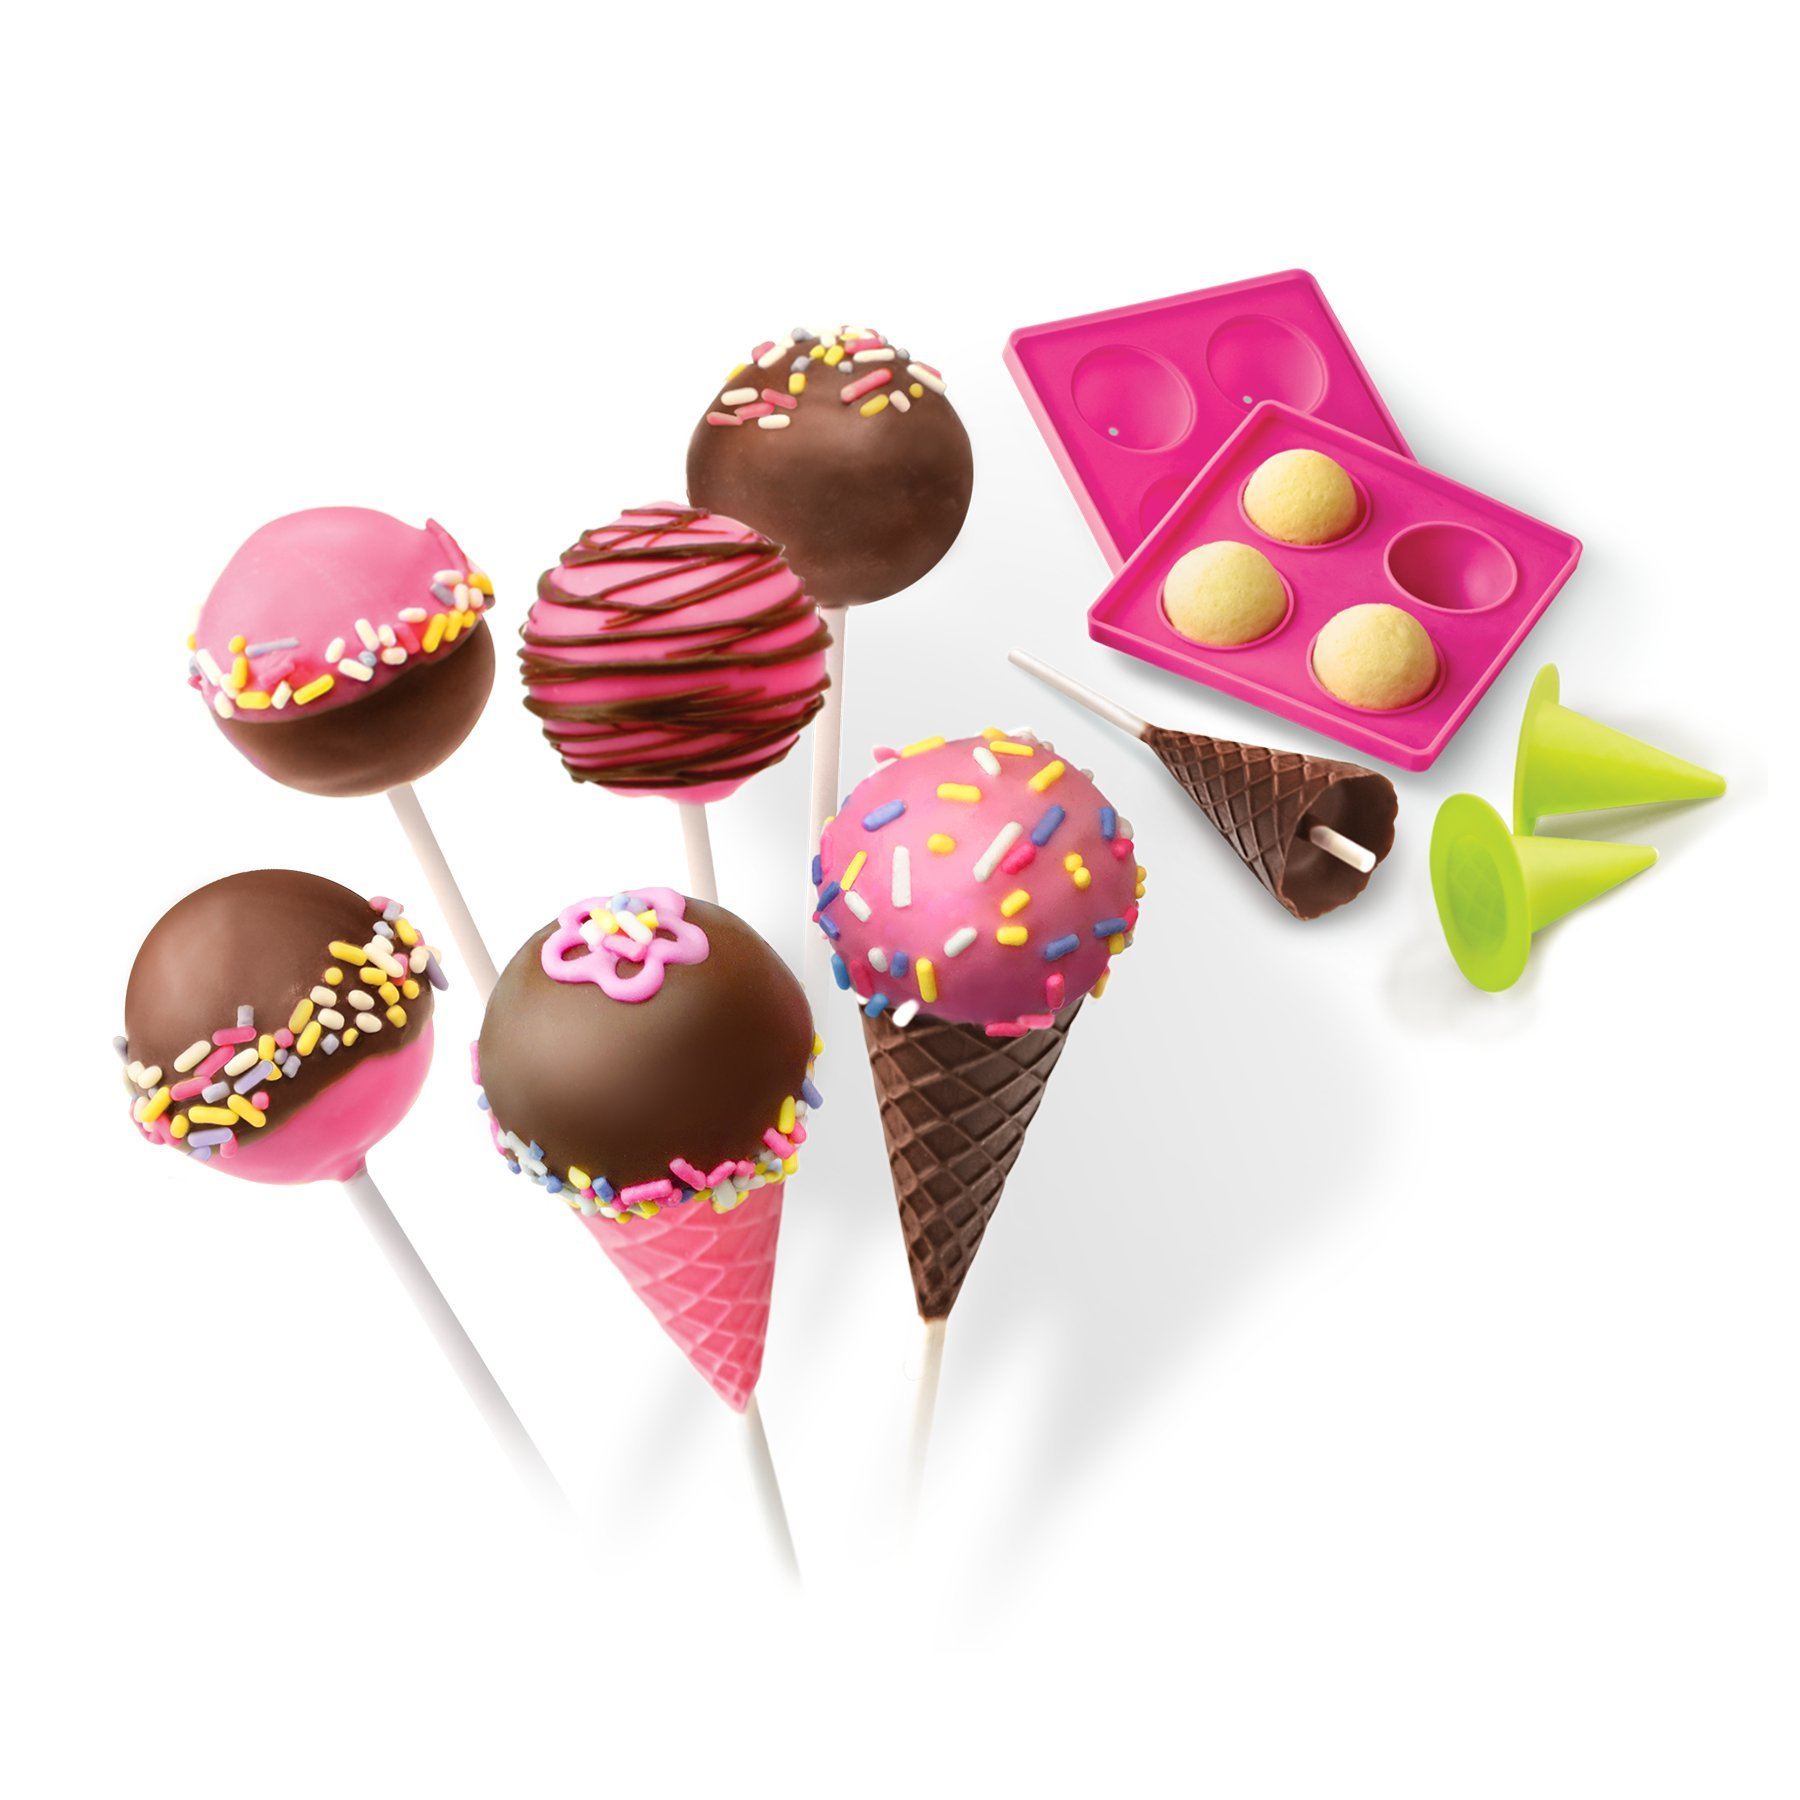 Real Cooking Cake Pops & Cones Baking Set - 15 Pc. Cake Mix, Sprinkles & Candy Included